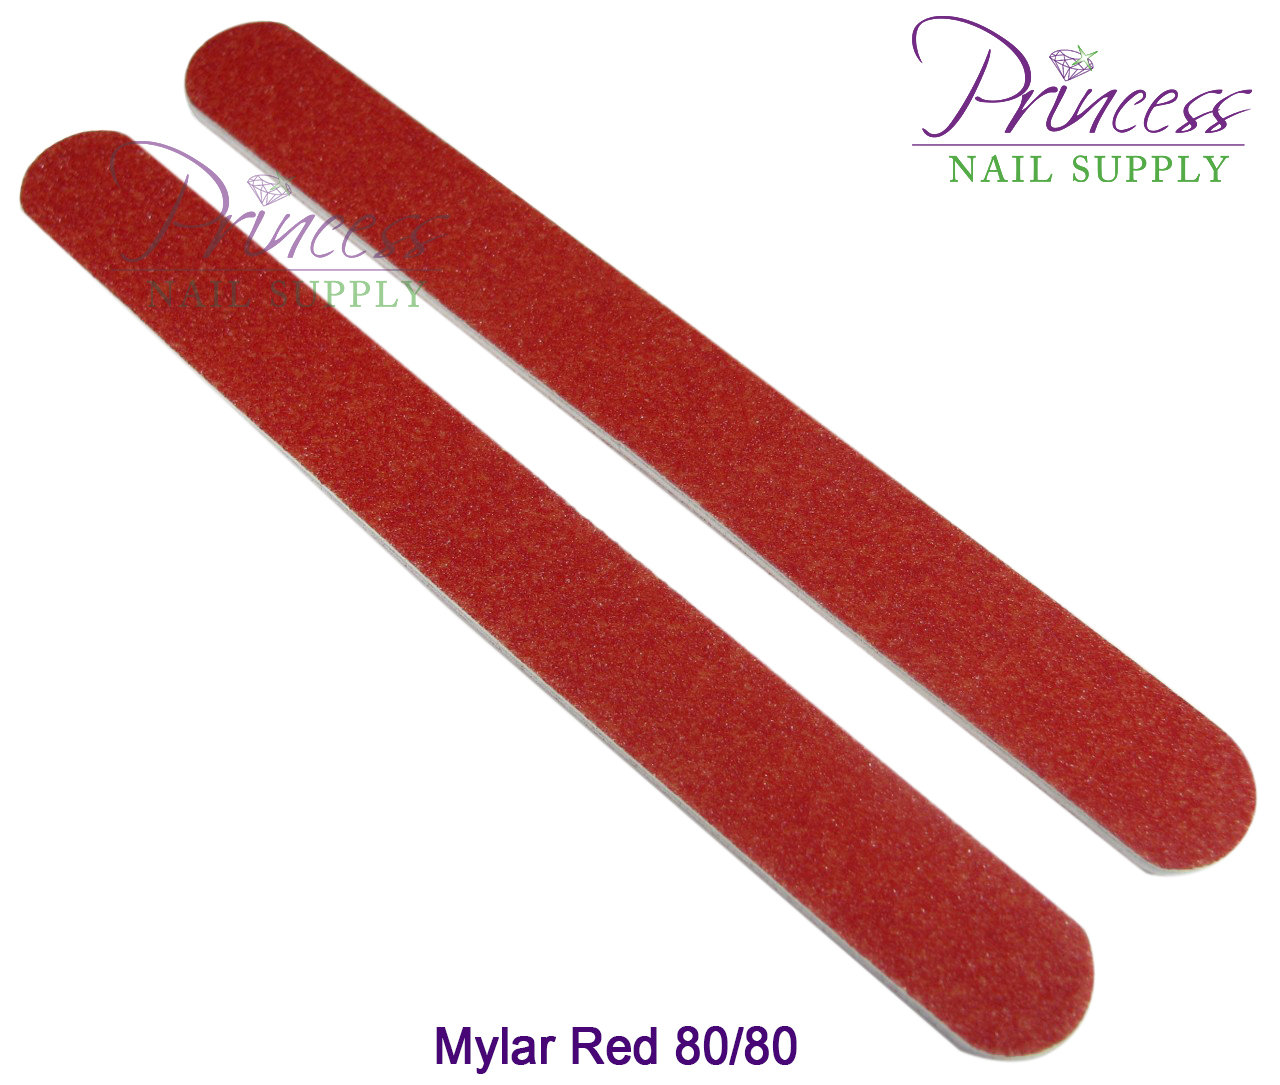 Princess Nail Files, 50 per pack - Mylar Red, Grit: 80/80(#10330